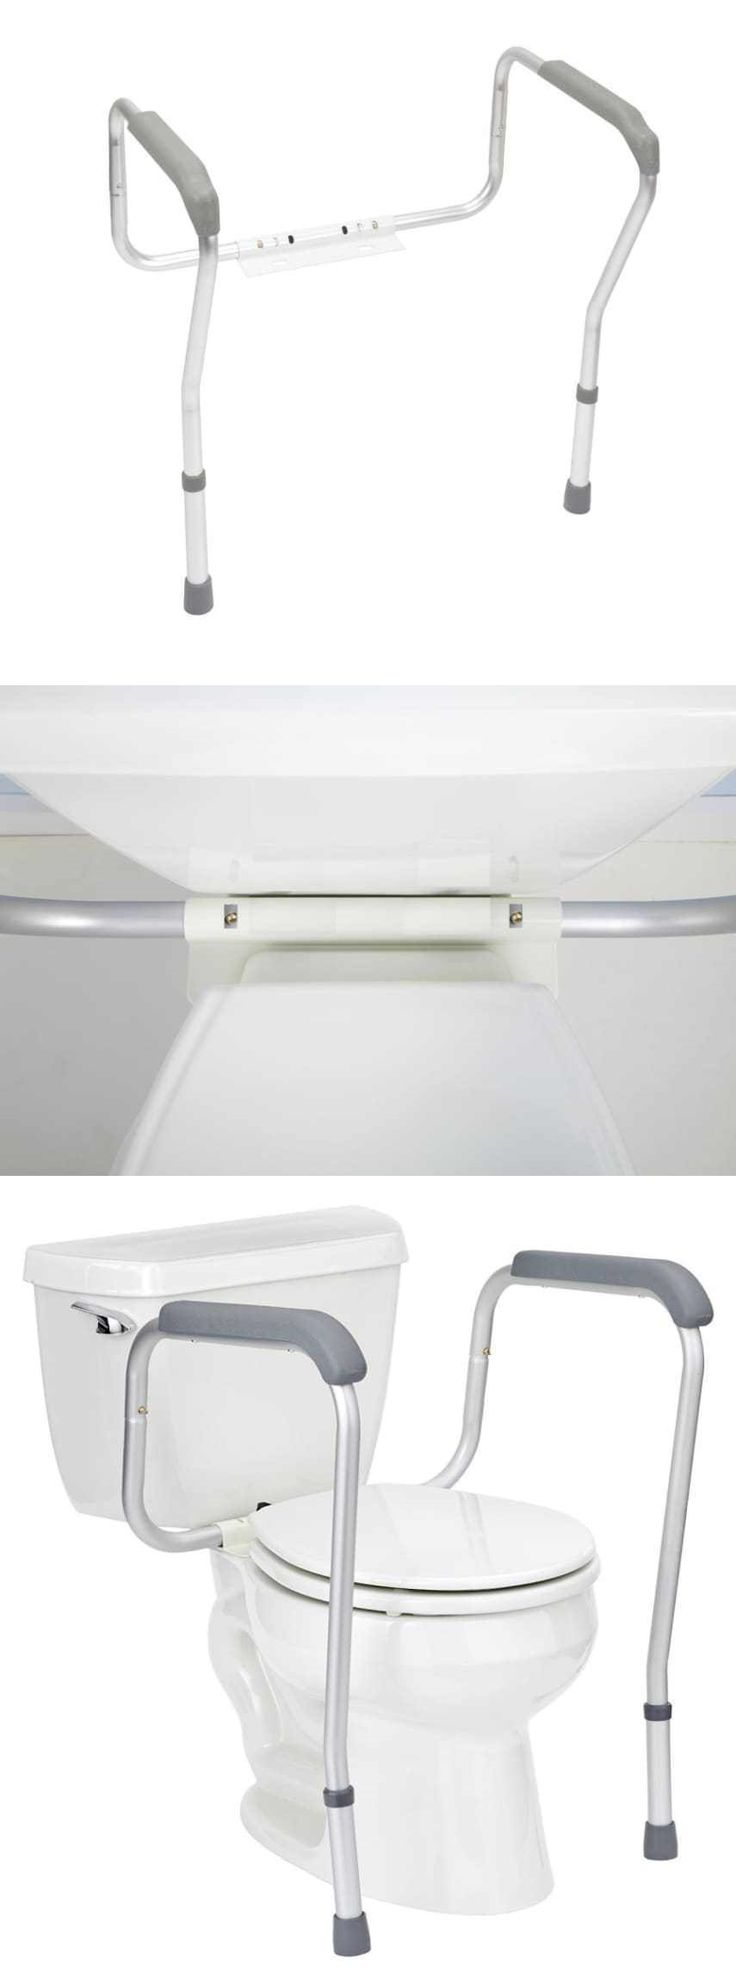 Other Accessibility Fixtures: Grab Bars Adjustable Toilet Safety Rail Seat Handicap Assist Elderly Bathroom -> BUY IT NOW ONLY: $36.95 on eBay!